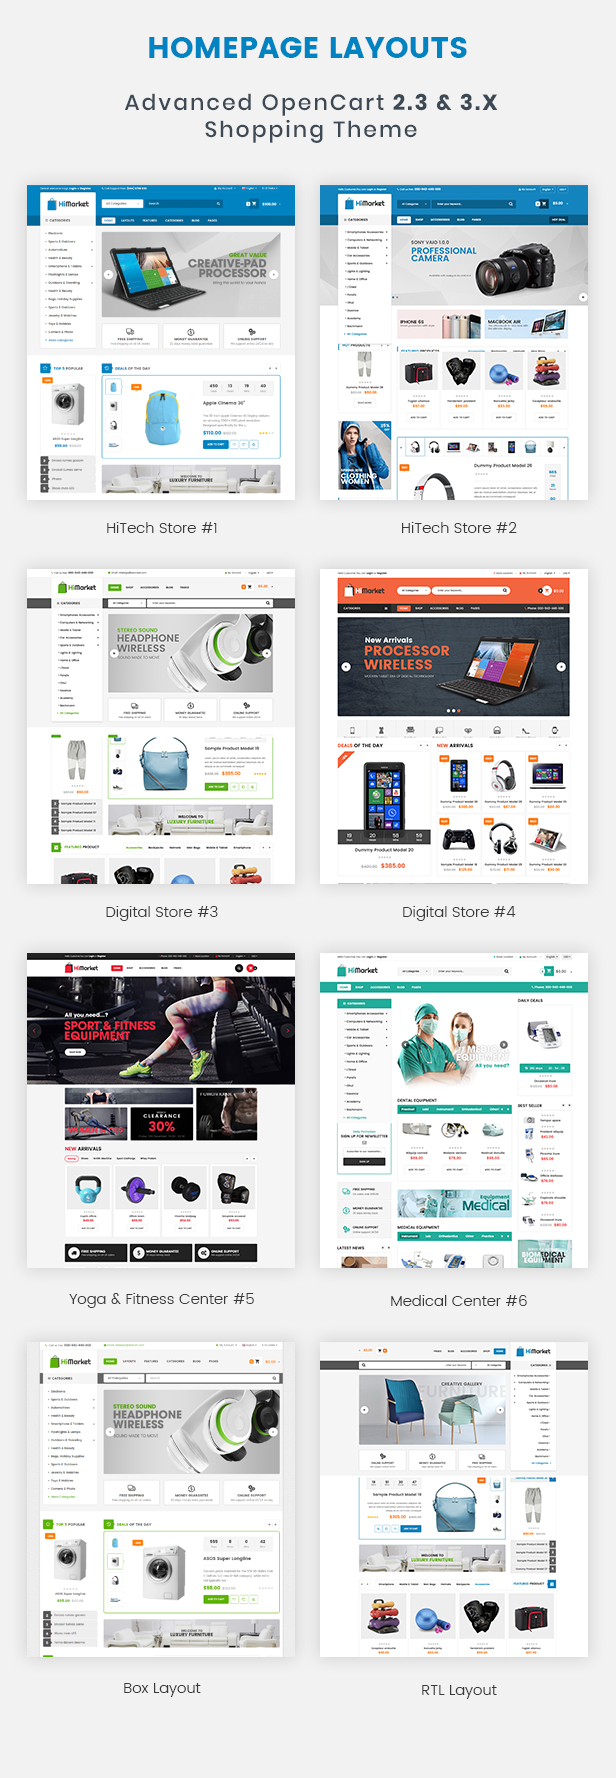 HiMarket - Drag & Drop OpenCart 2.3 & 3.x Theme With Mobile-Specific Layouts